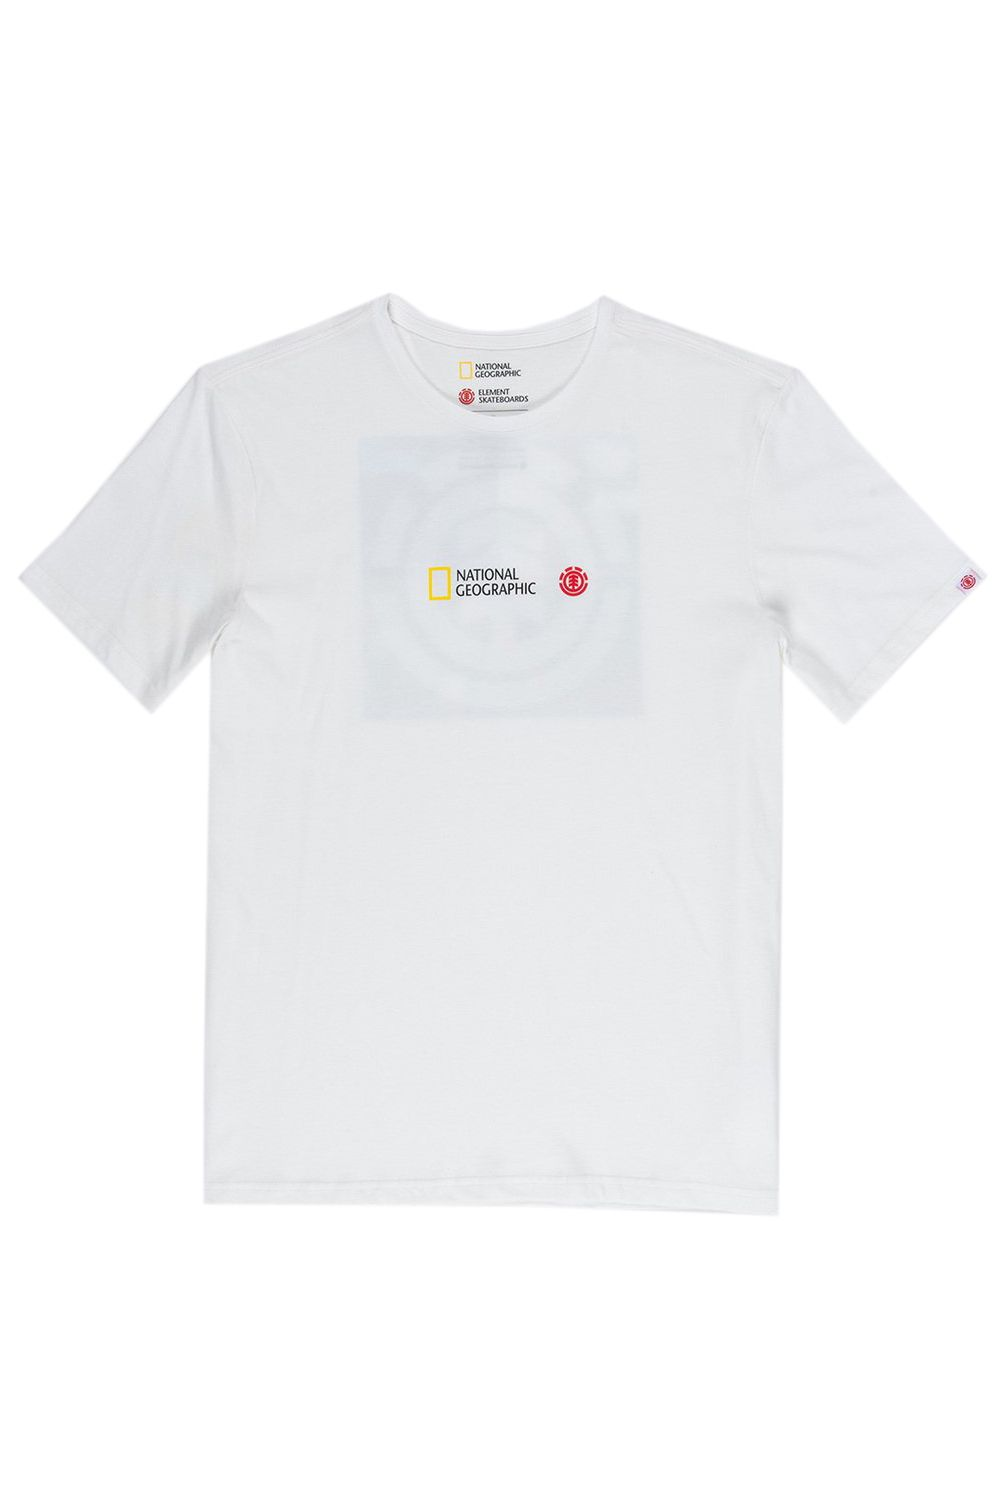 T-Shirt Element QUADRANT SEASONS NATIONAL GEOGRAPHIC Off White